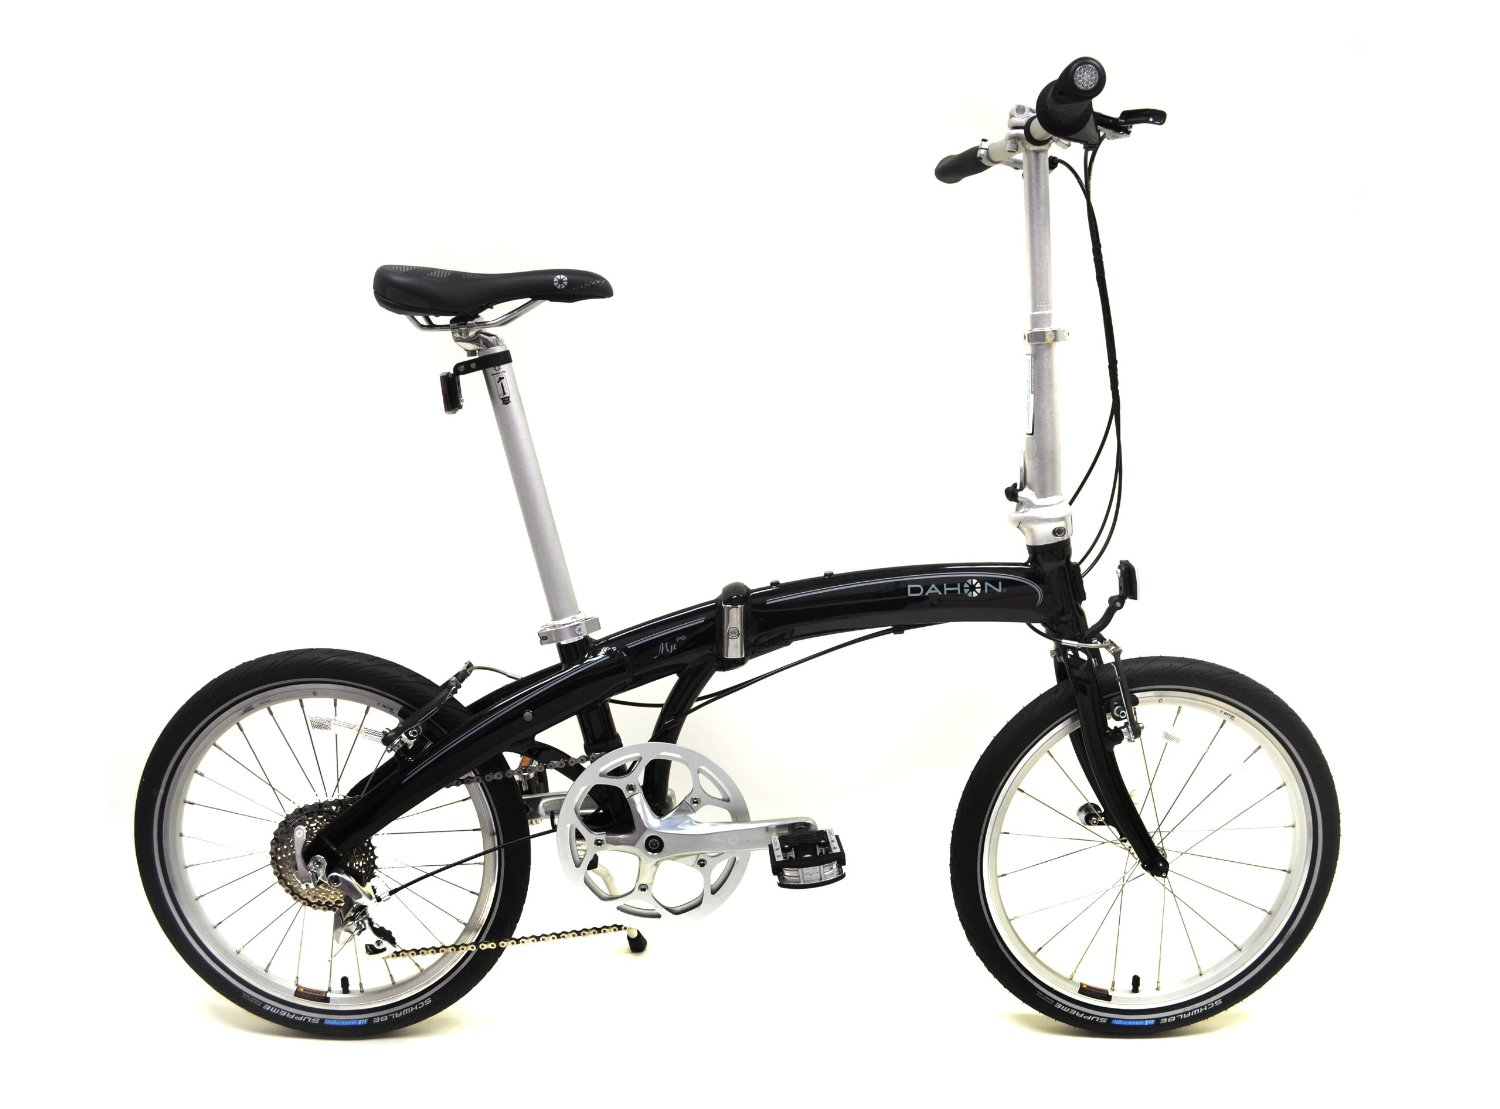 Dahon Mu P8 Folding Bike Review The Bike For Everyone